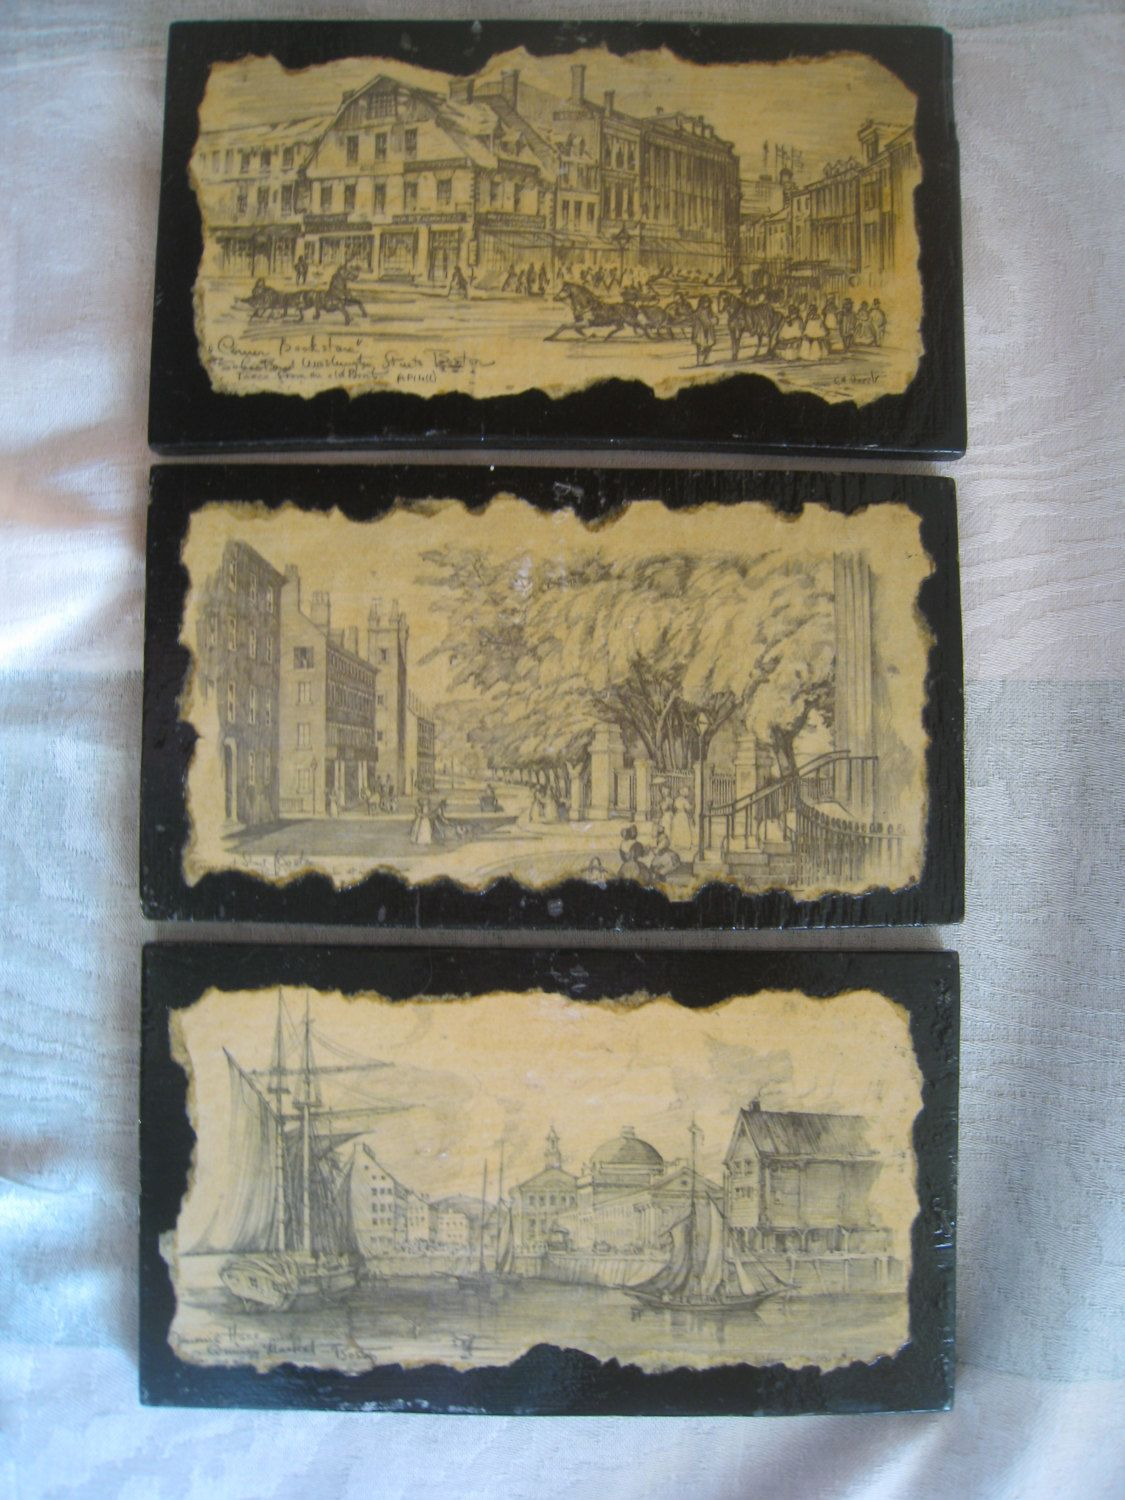 Boston prints 1800 early scenes originals mounted on black painted wood priced per unit (up to 3) by ANoteofThanks on Etsy